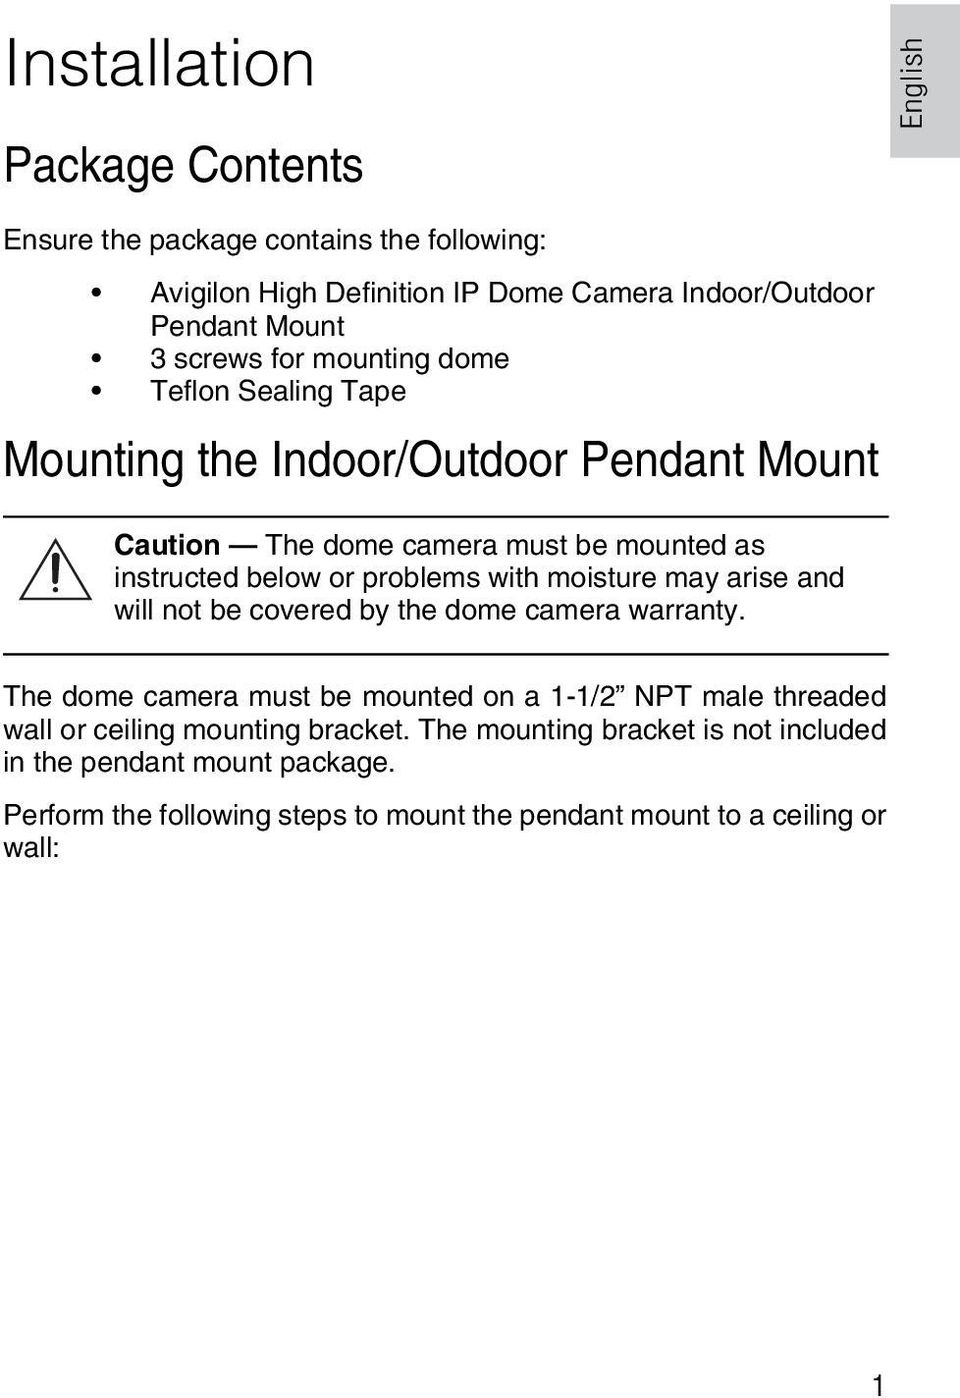 problems with moisture may arise and will not be covered by the dome camera warranty.